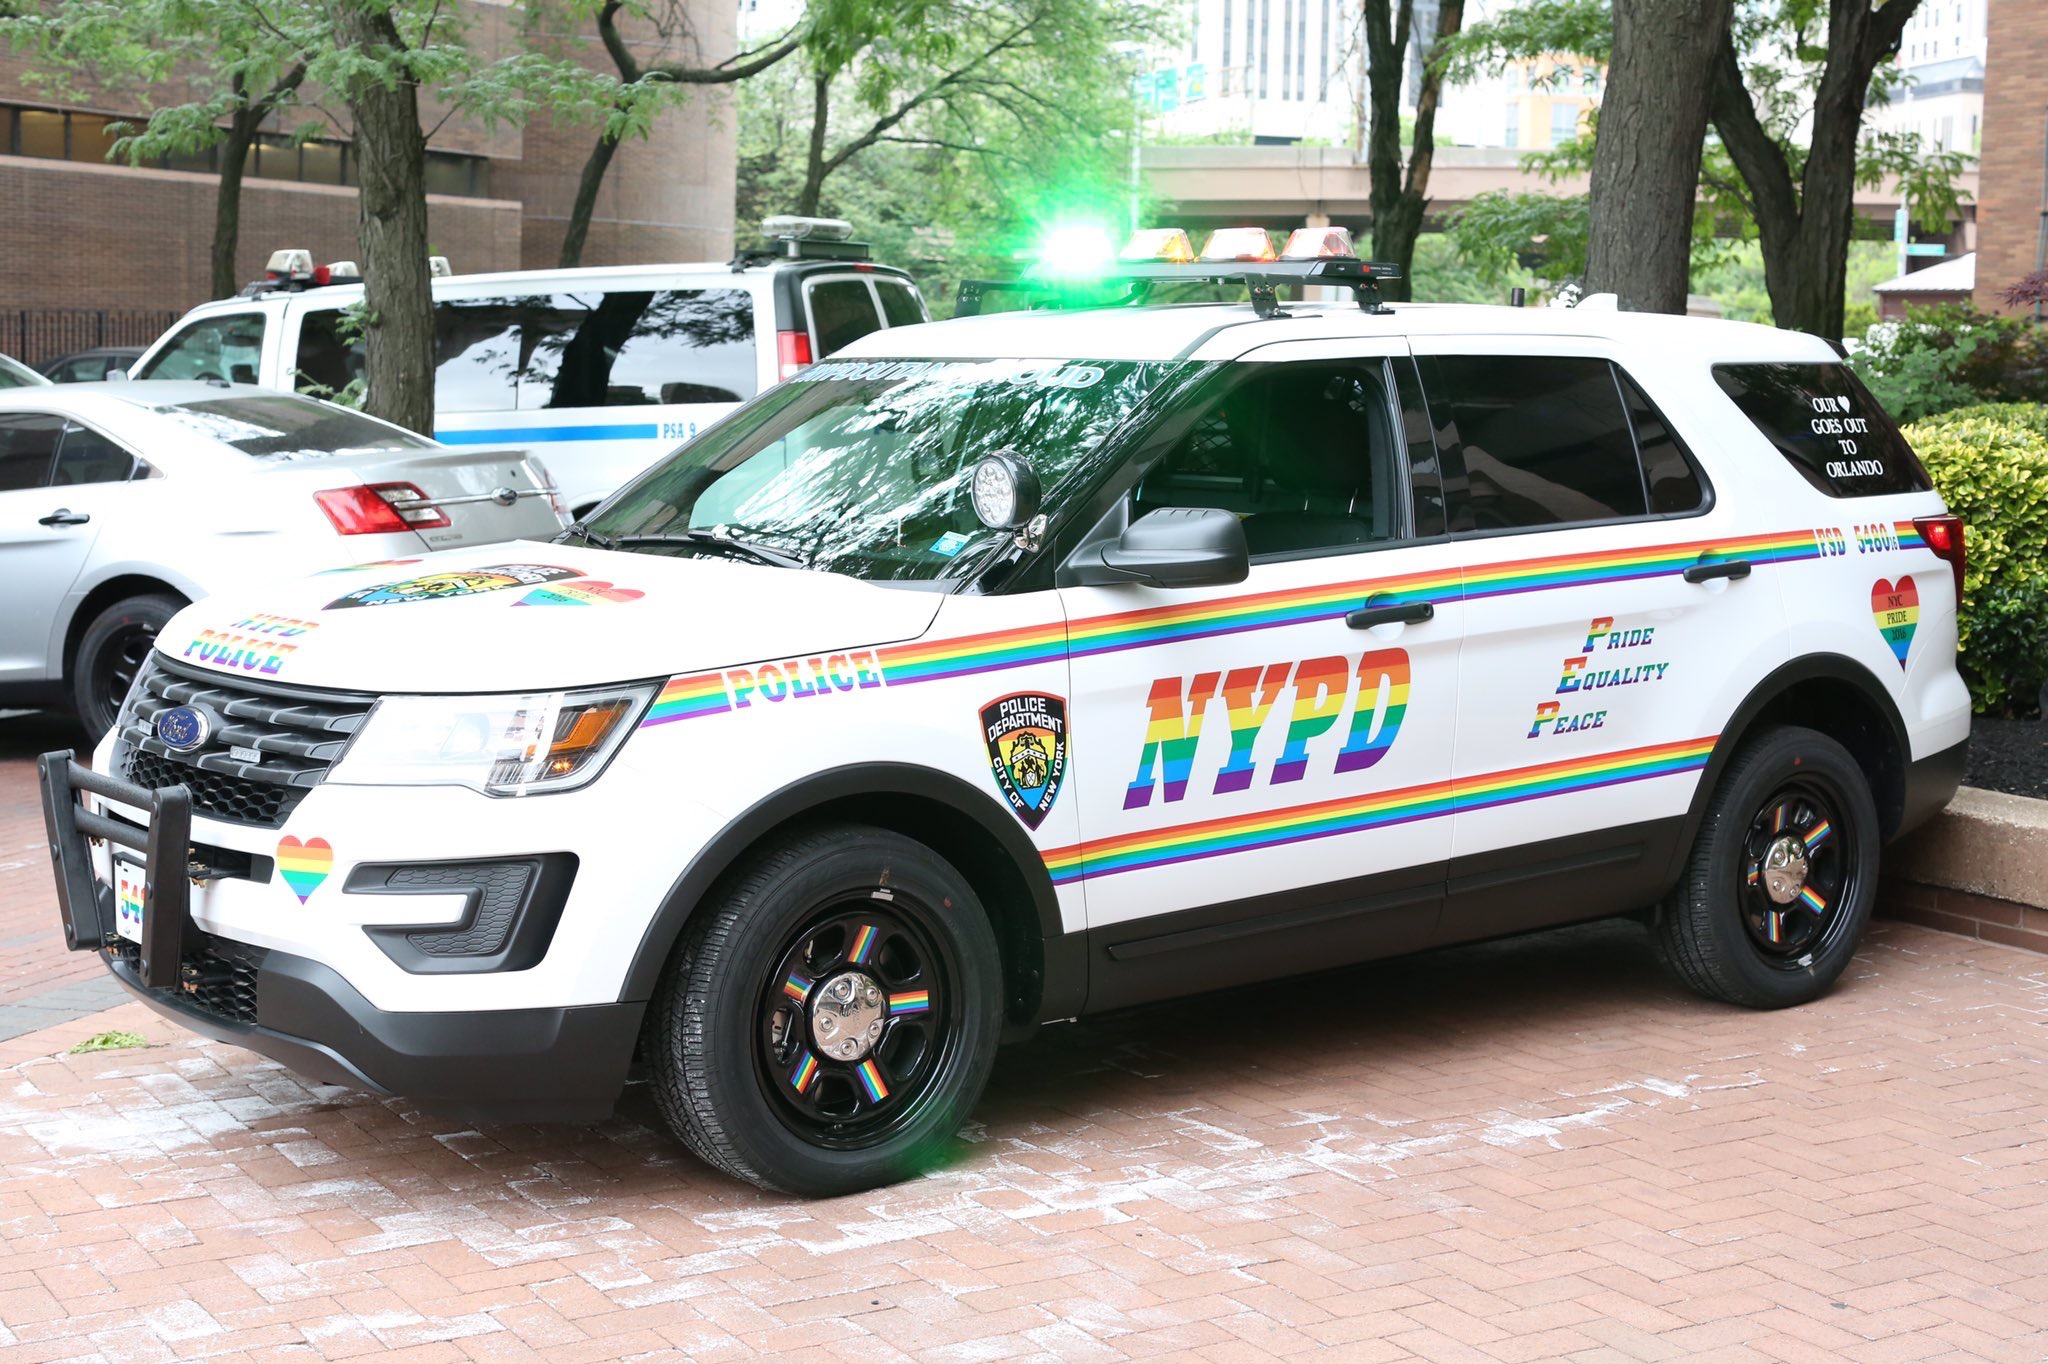 Le Ford Explorer de la police new-yorkaise gay et fier de l'être ! - Photo n°1